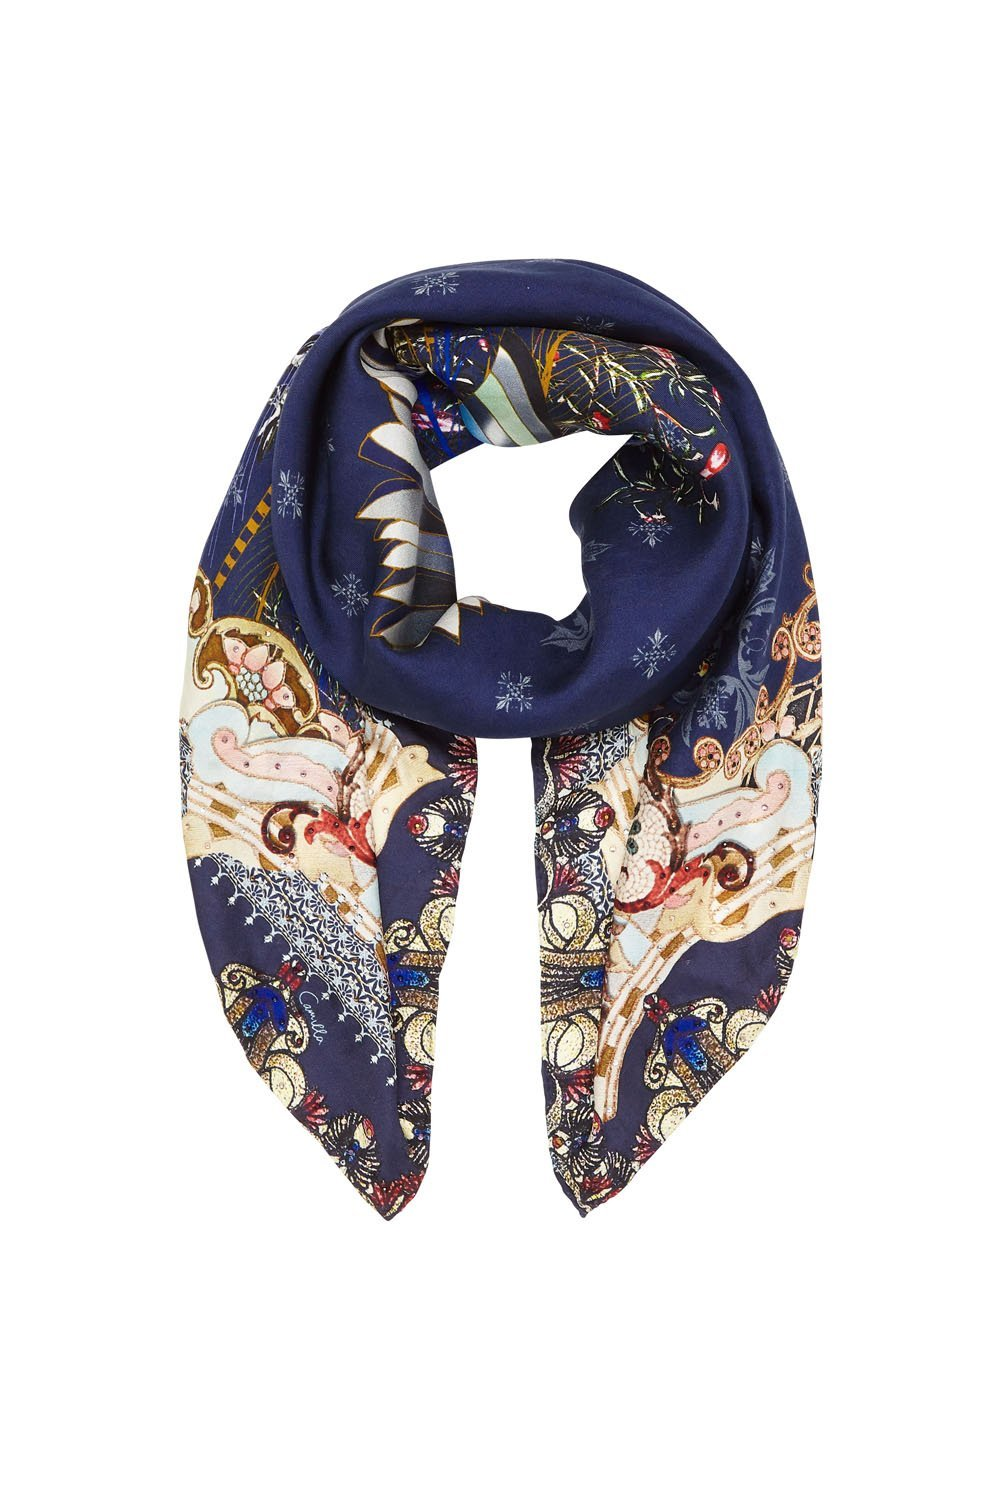 LARGE SQUARE SCARF SOUTHERN TWILIGHT